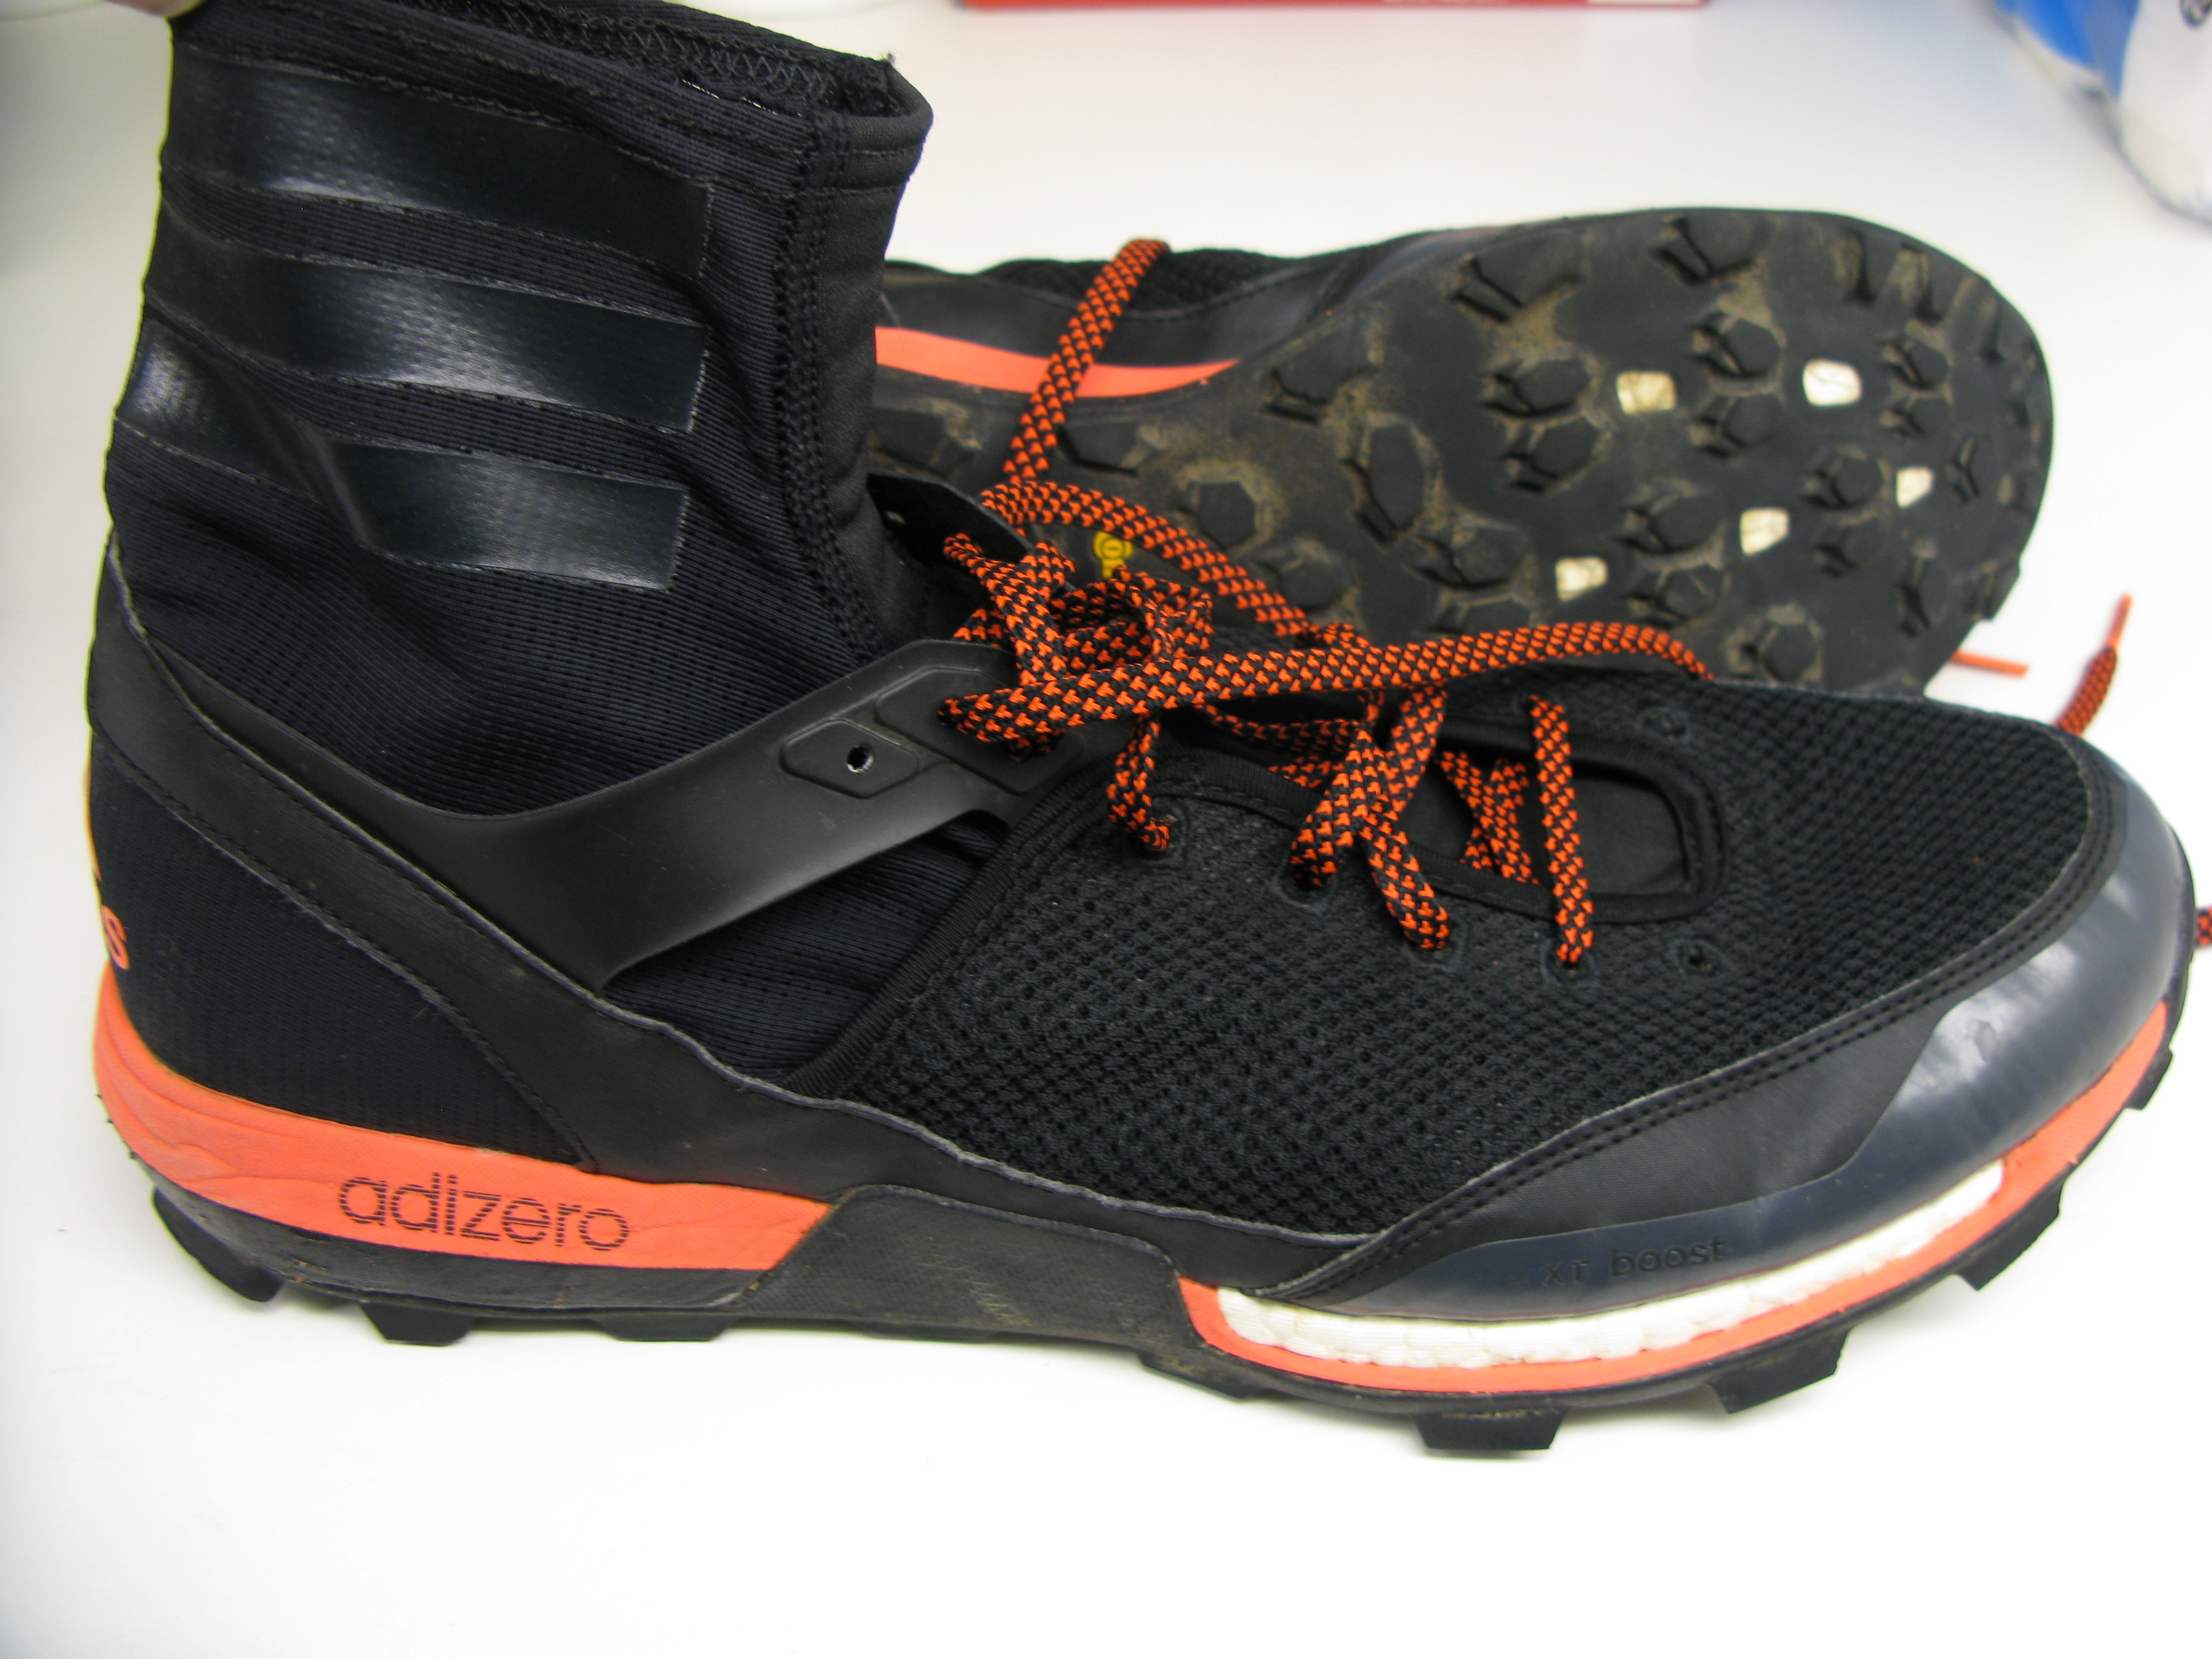 1264a2945605a4 ... Response Trail Boost Review adidas adizero XT Boost Review  Unique and  Effective Trail Shoe